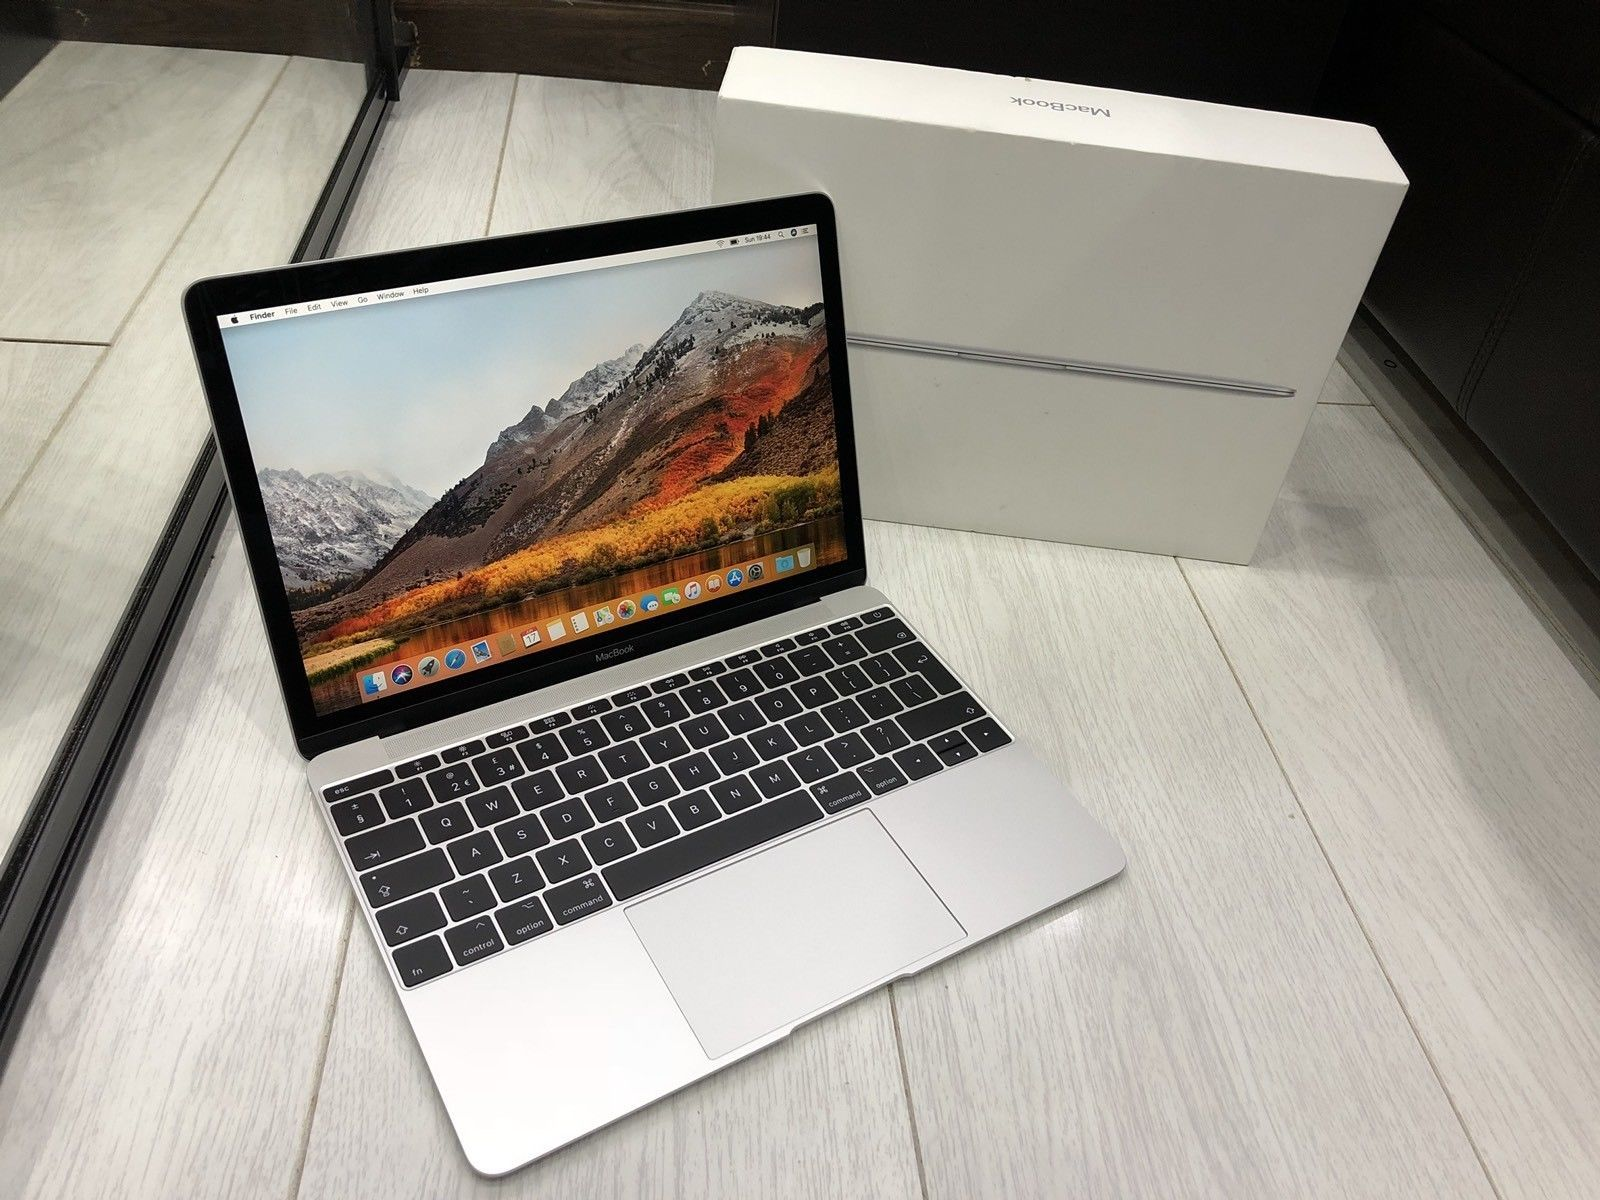 Types Of Apple Laptops Apple Macbook Mac Laptop Shopping Website Http Www Usaonlinesale Com Apple Laptop Apple Products Laptop Price